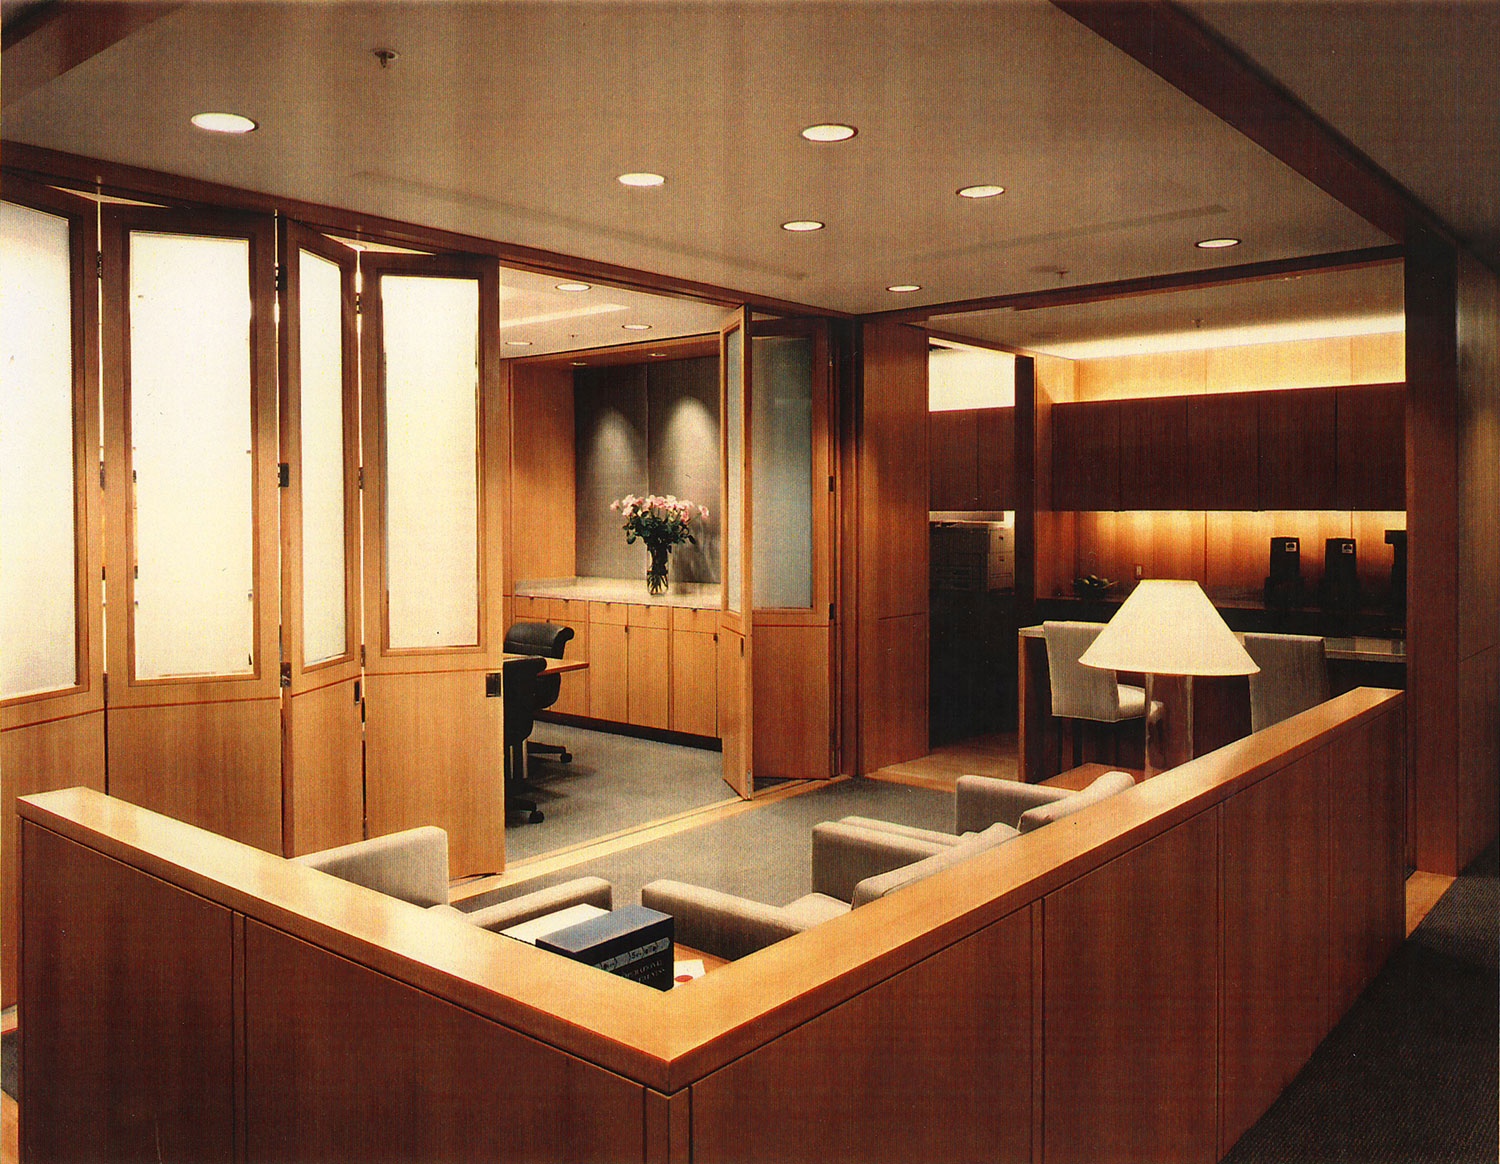 McKINSEY & CO – Los Angeles, California  work completed for former employer    Architect: Brayton & Hughes Design Studio  Project Designer: Timothy Gemmill  Project Type: Private Offices